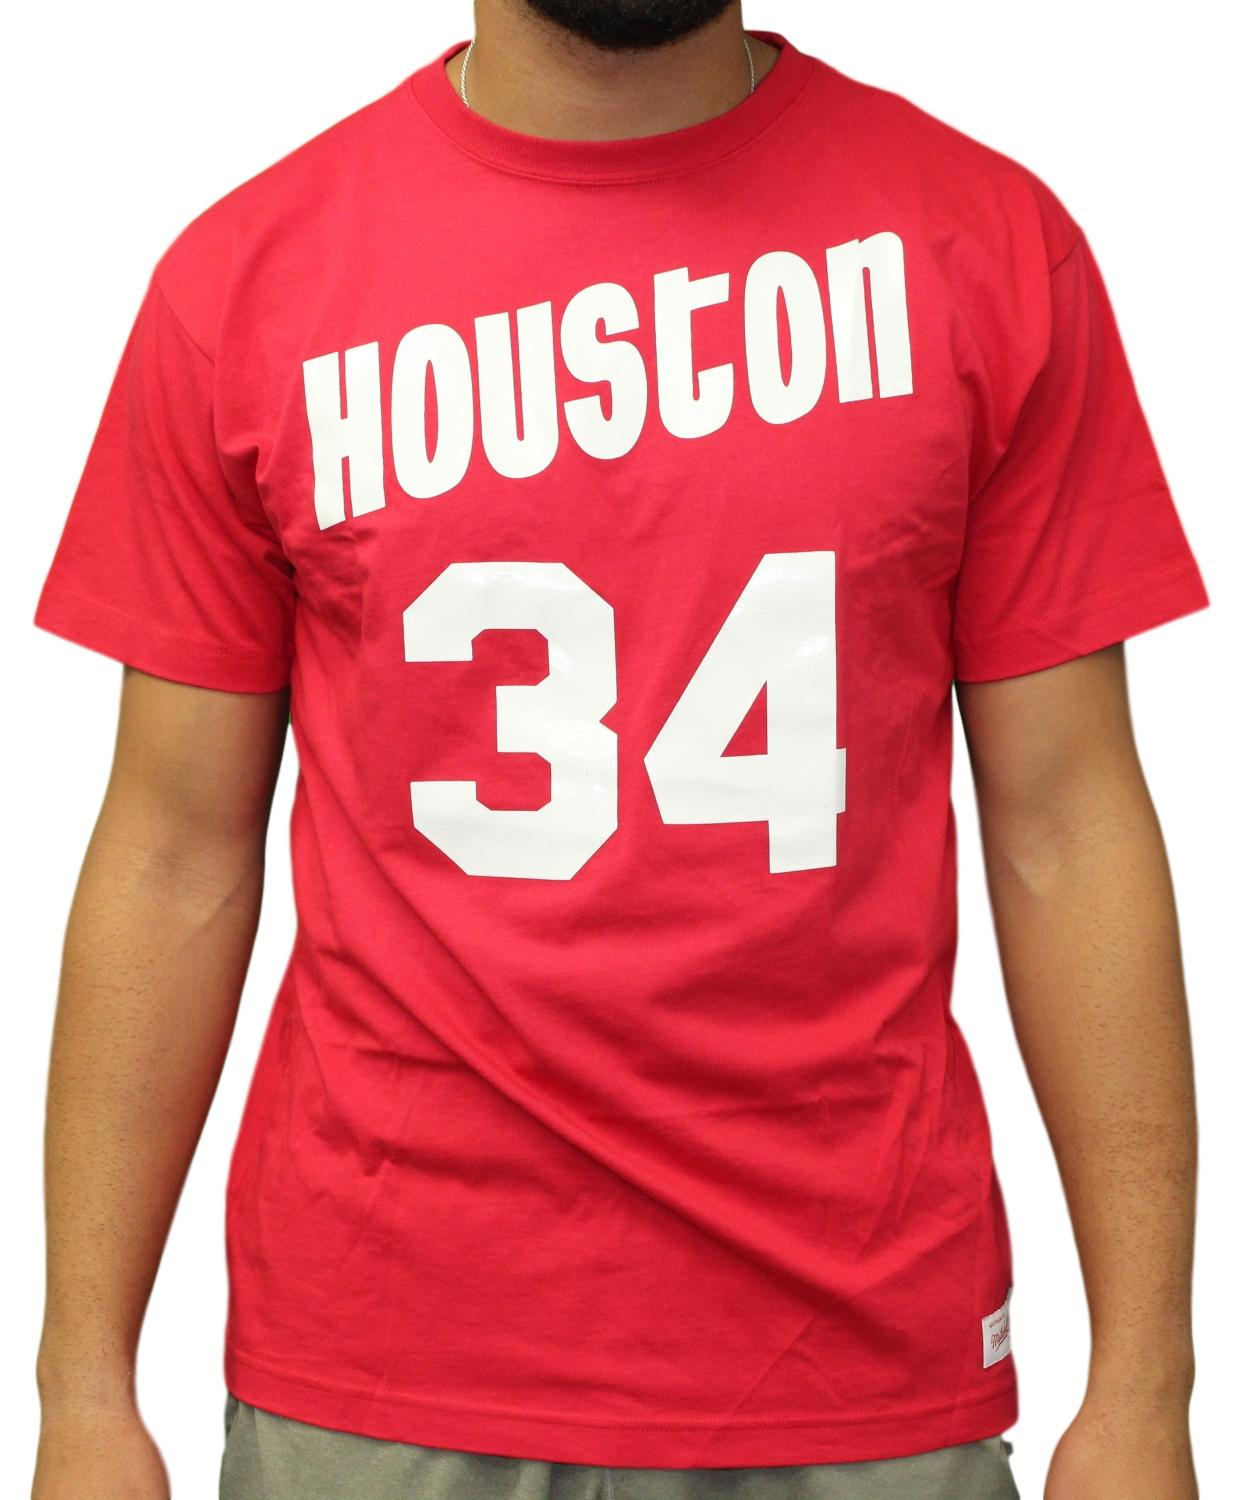 7c219dae1 Details about Hakeem Olajuwon Houston Rockets Mitchell   Ness NBA Men s